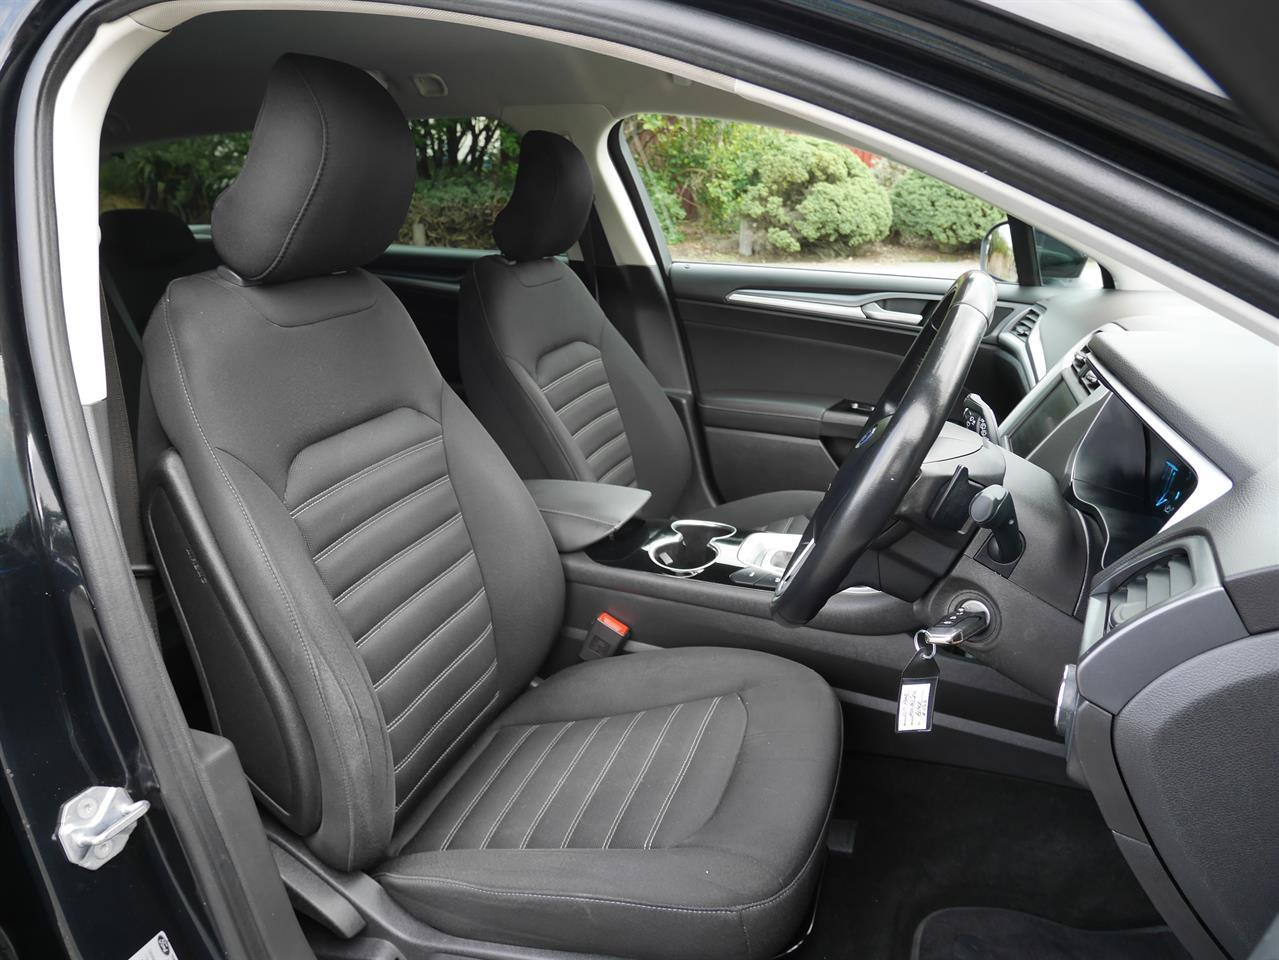 image-8, 2015 FORD MONDEO Ambiente 2.0 TDCi Wagon at Invercargill